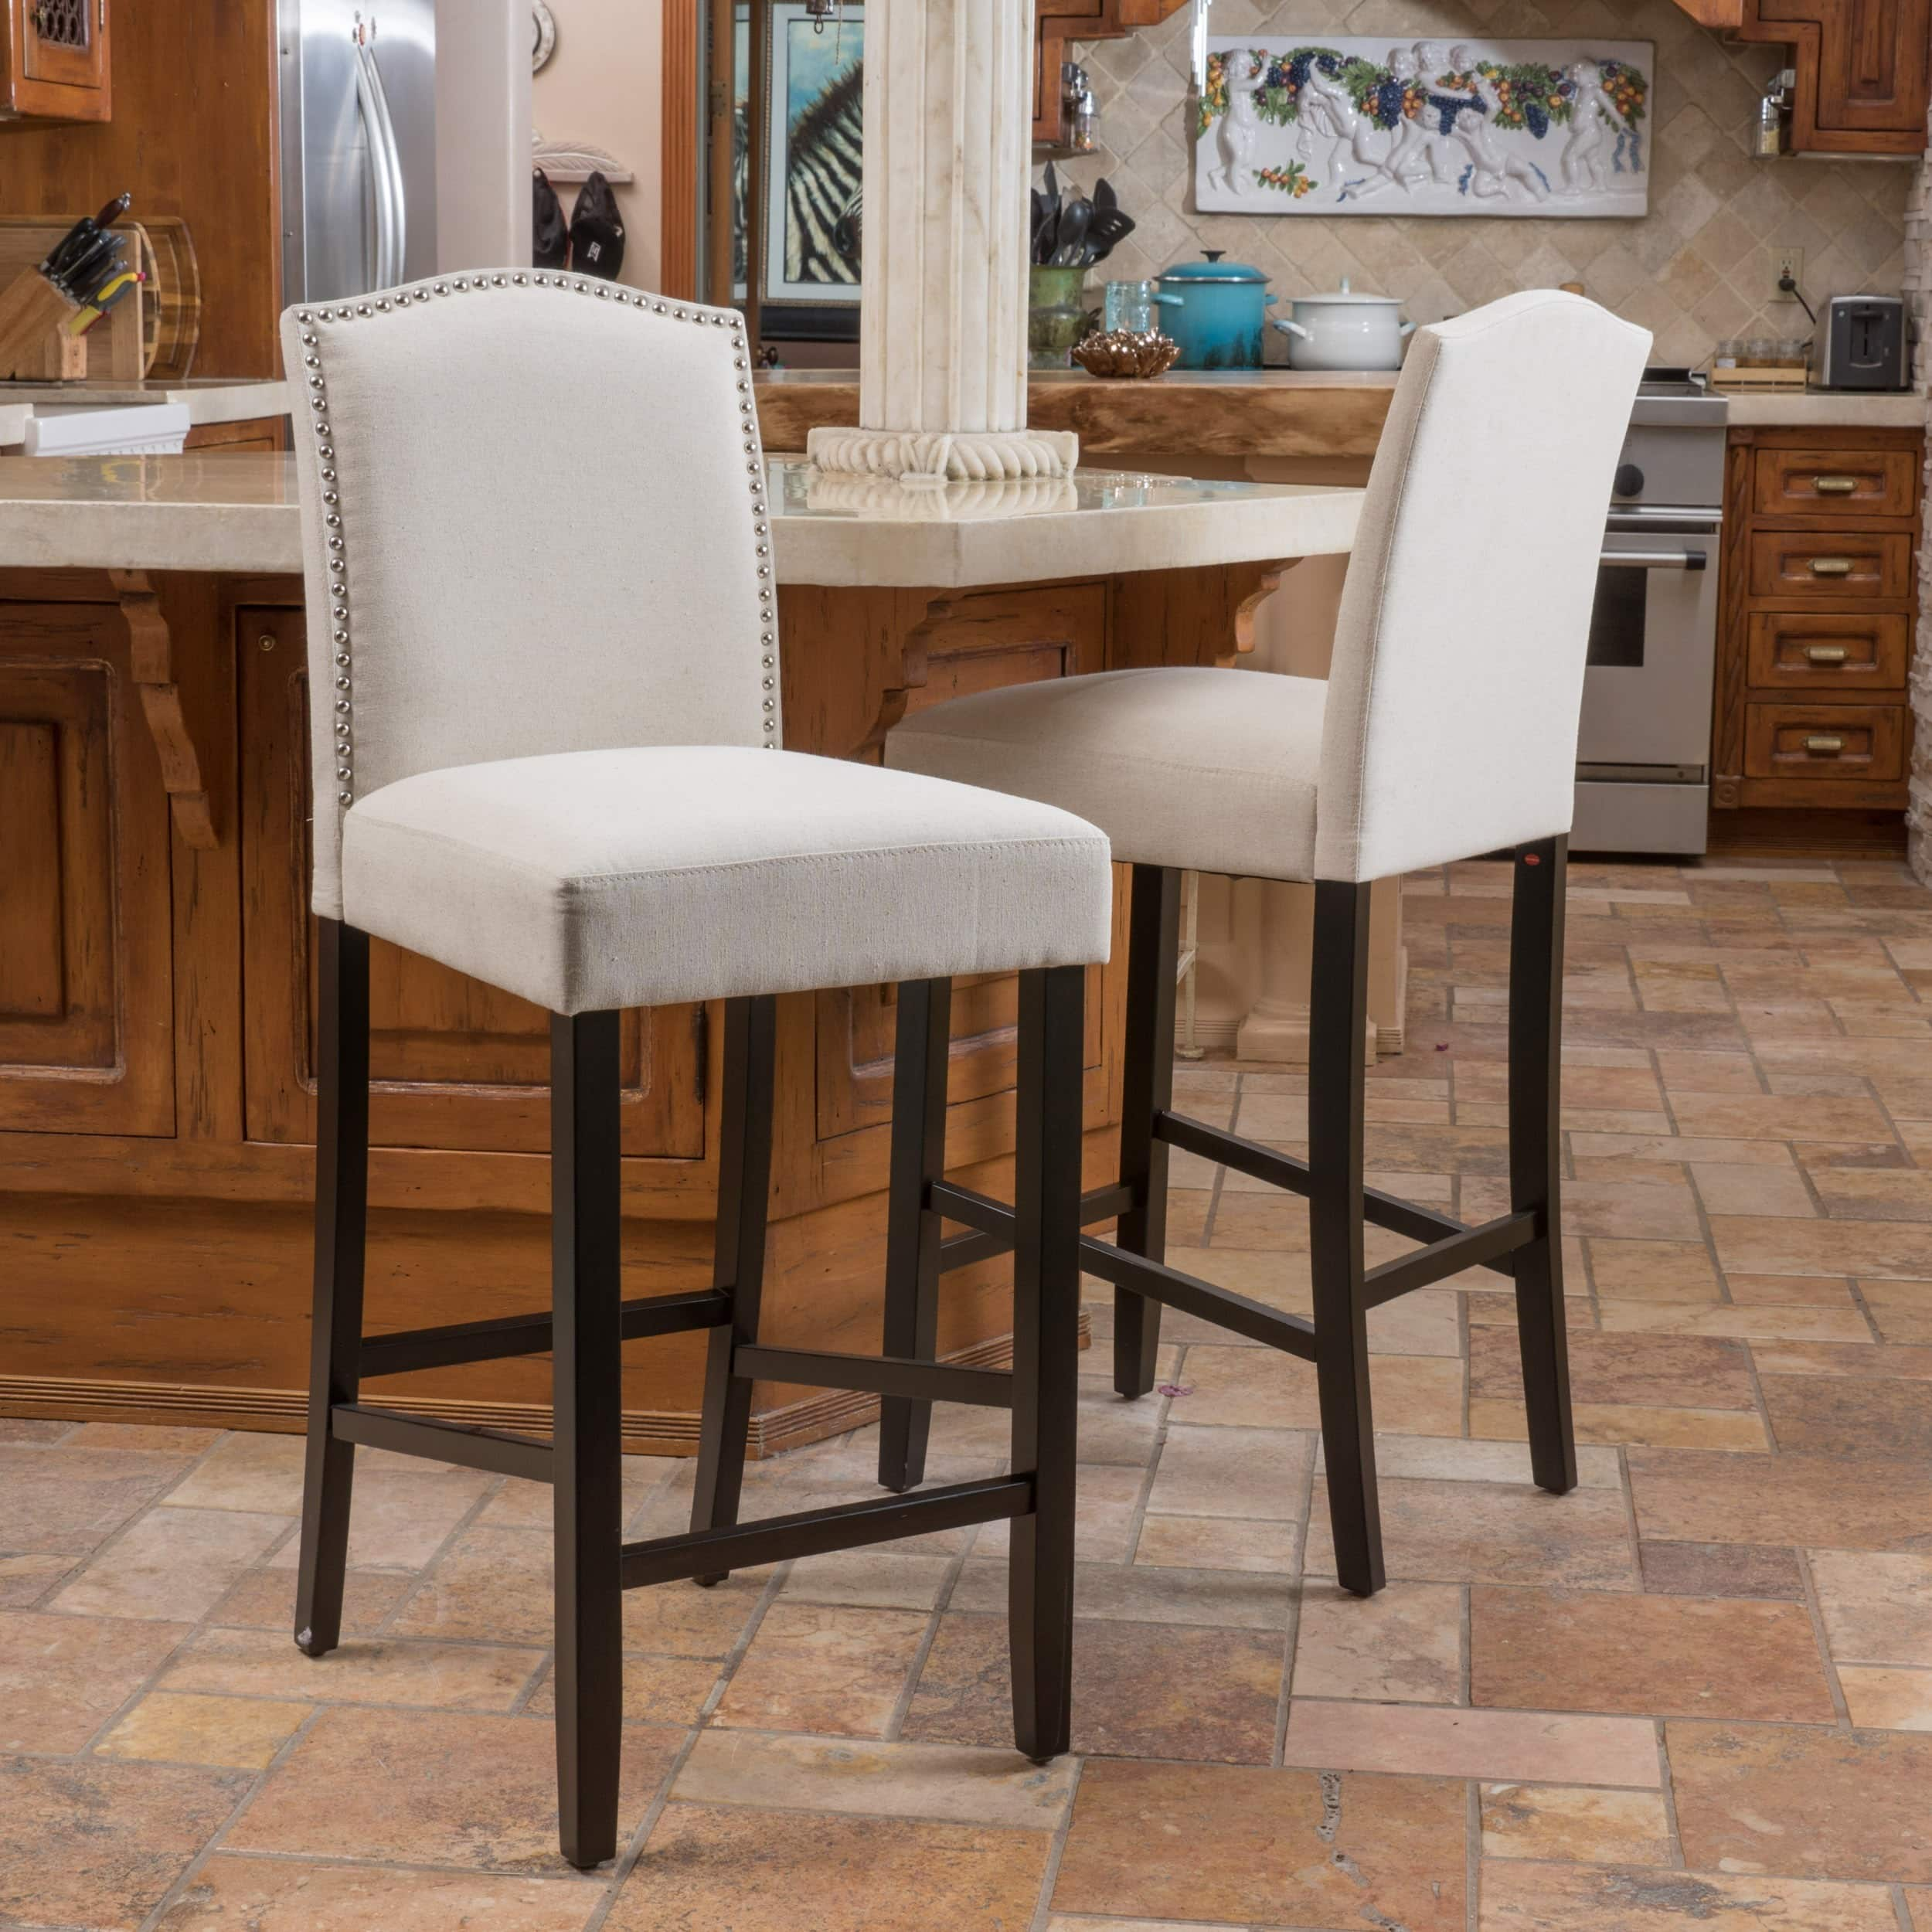 Counter Stools Overstock: Counter & Bar Stools For Less